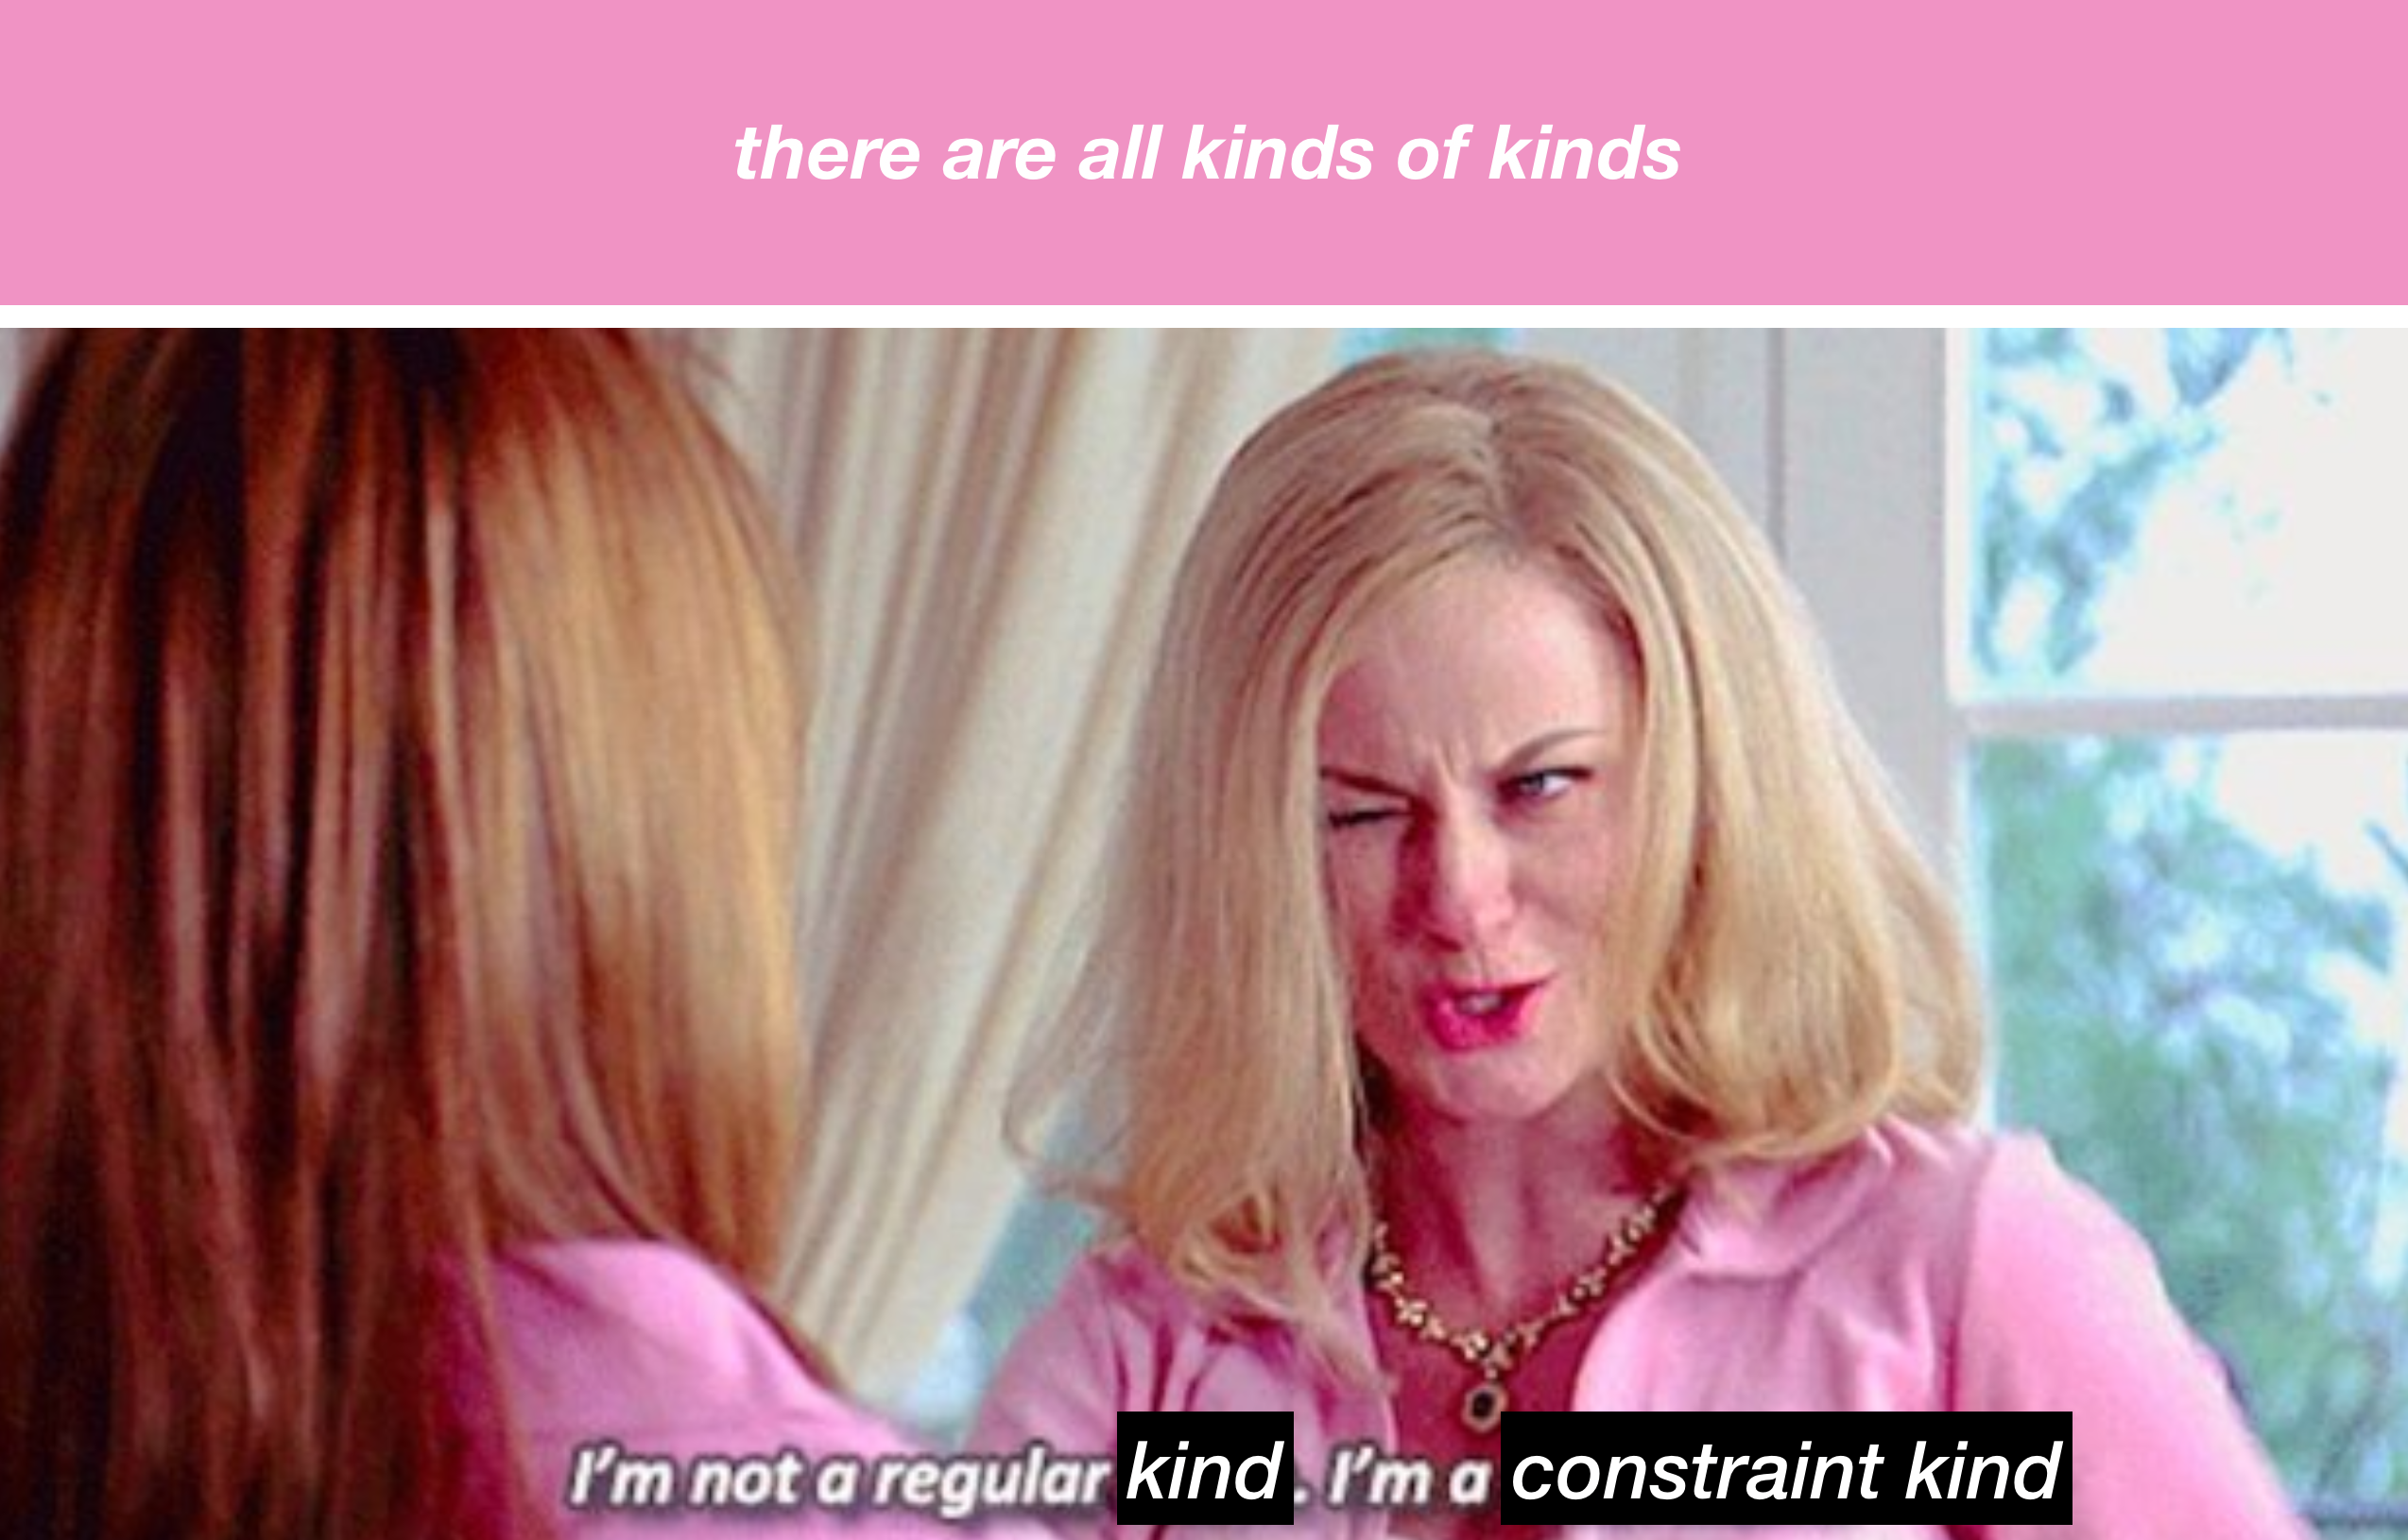 I'm not a regular kind, I'm a constraint kind